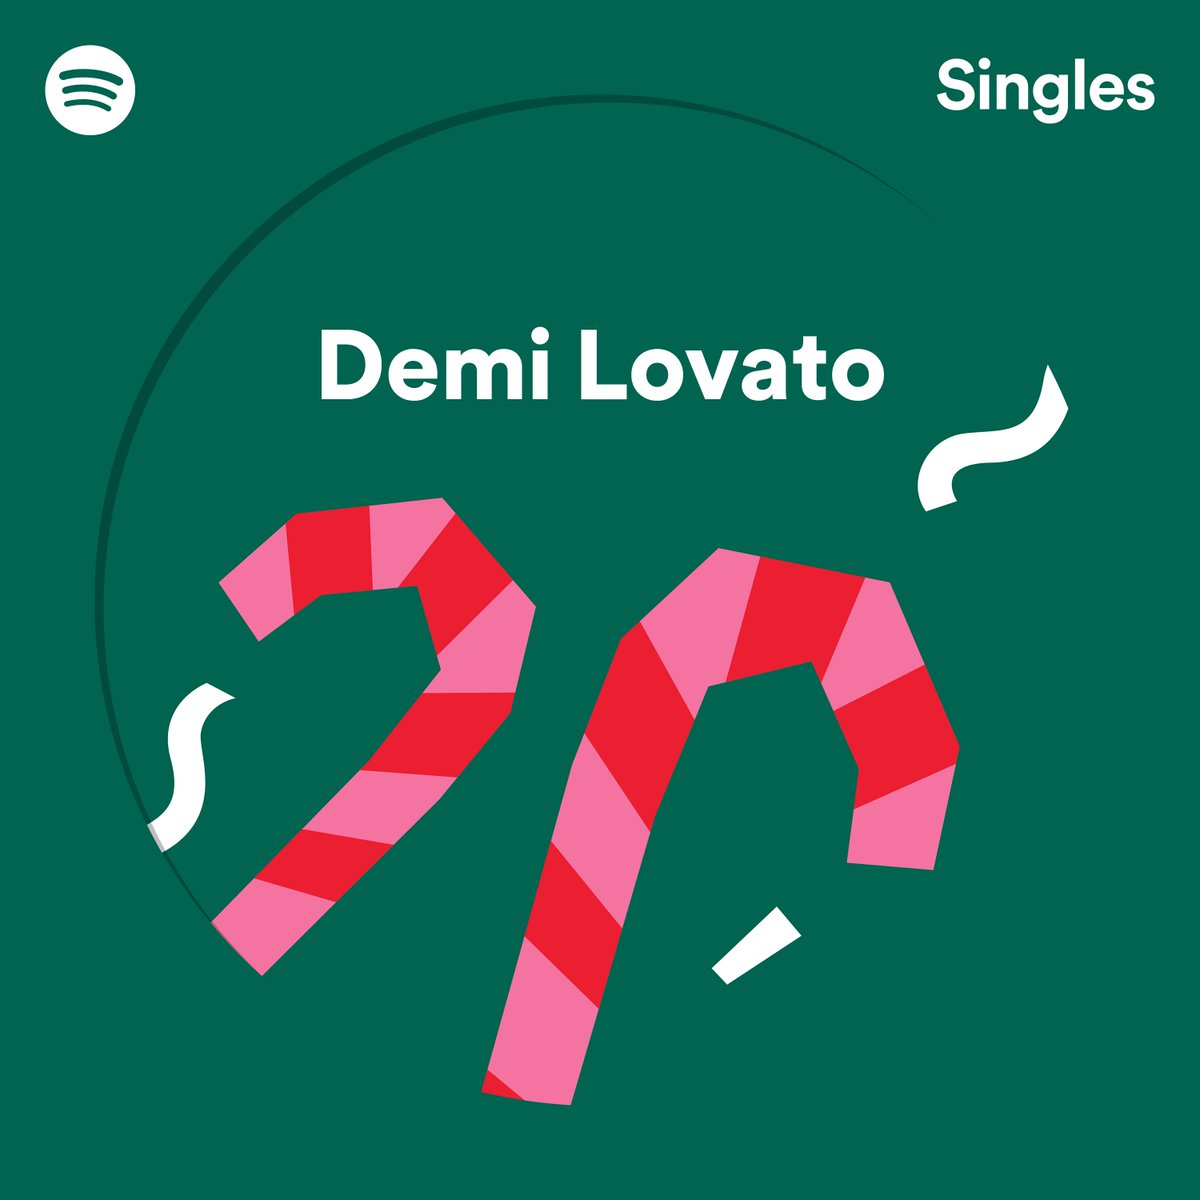 A little something for your Holiday playlists ???????????? @Spotify https://t.co/oP3sOTF0M8 https://t.co/5t7gfV57aj